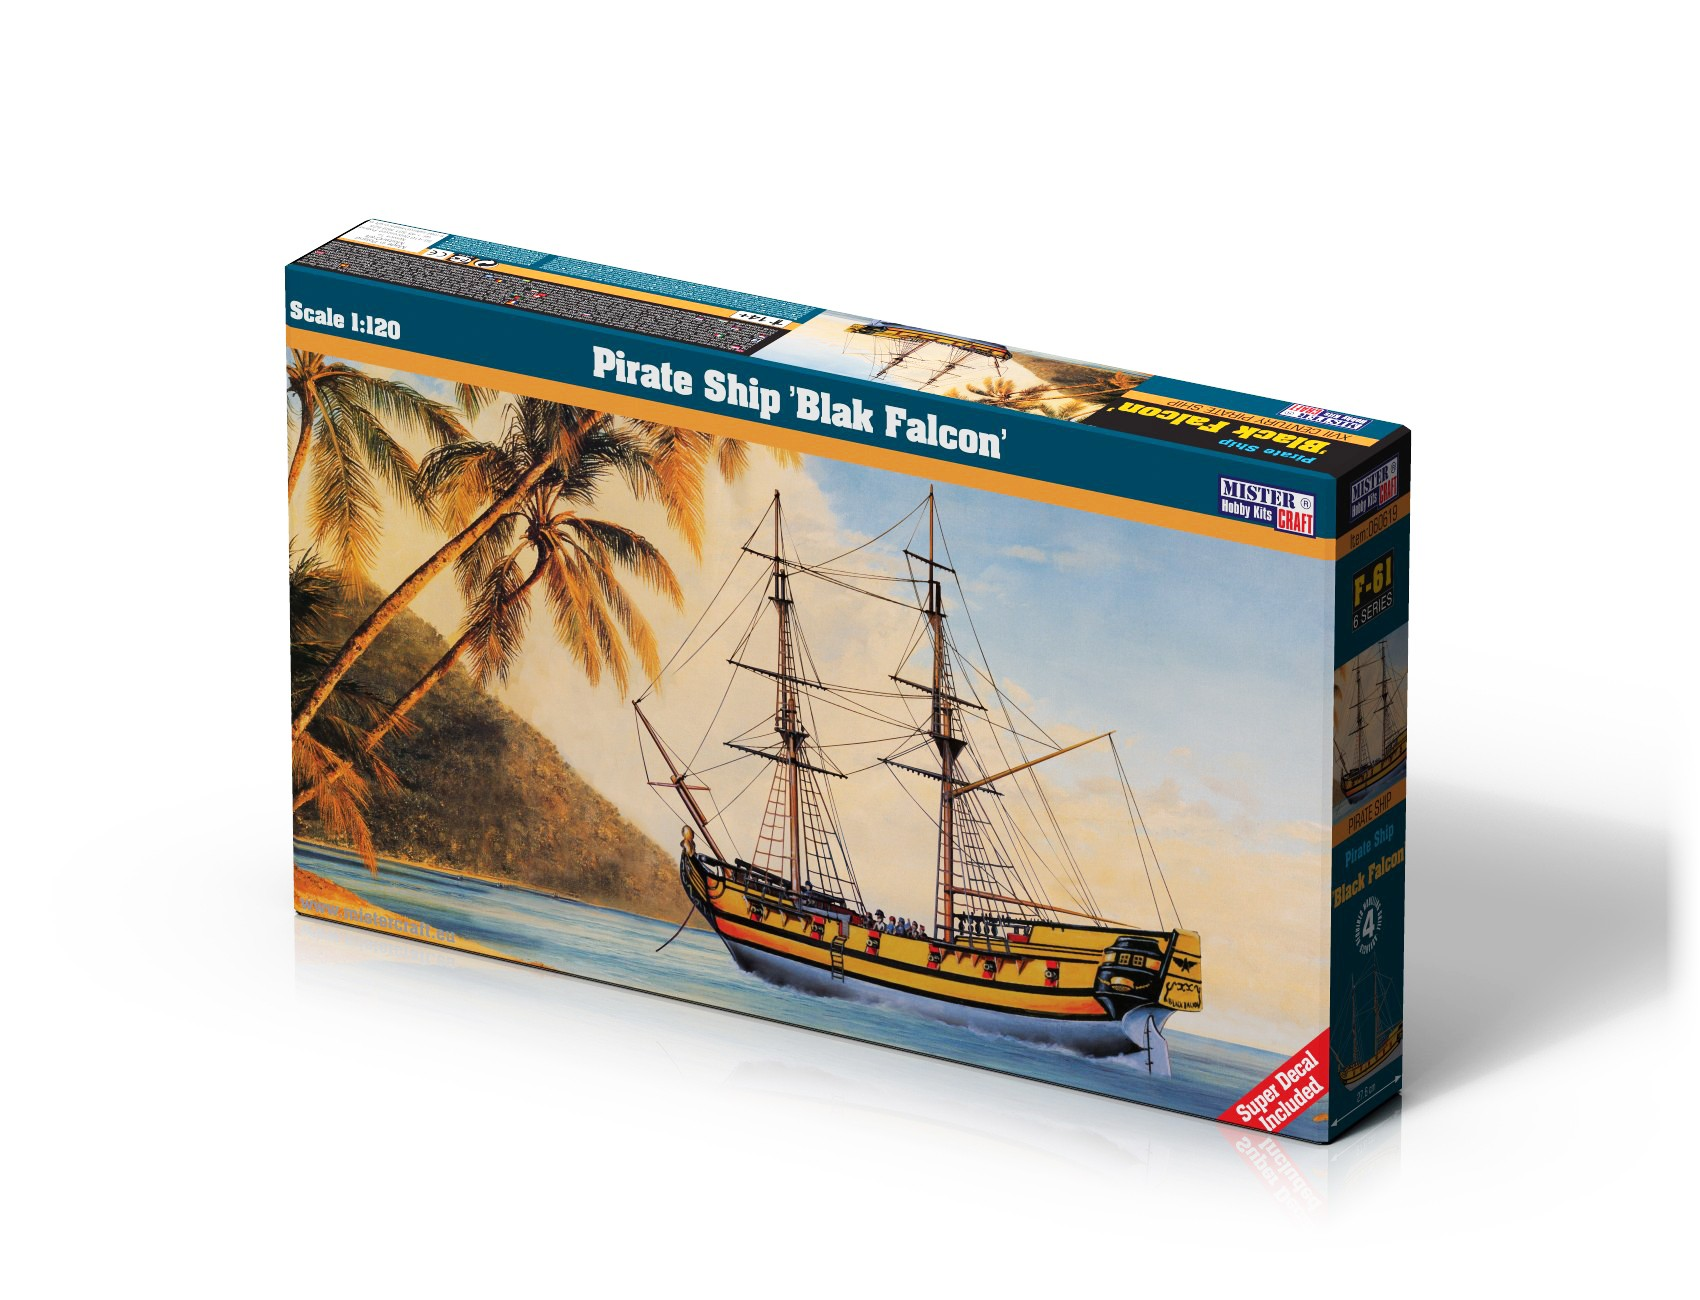 F-61 Pirate Ship Black Falcon   1:120